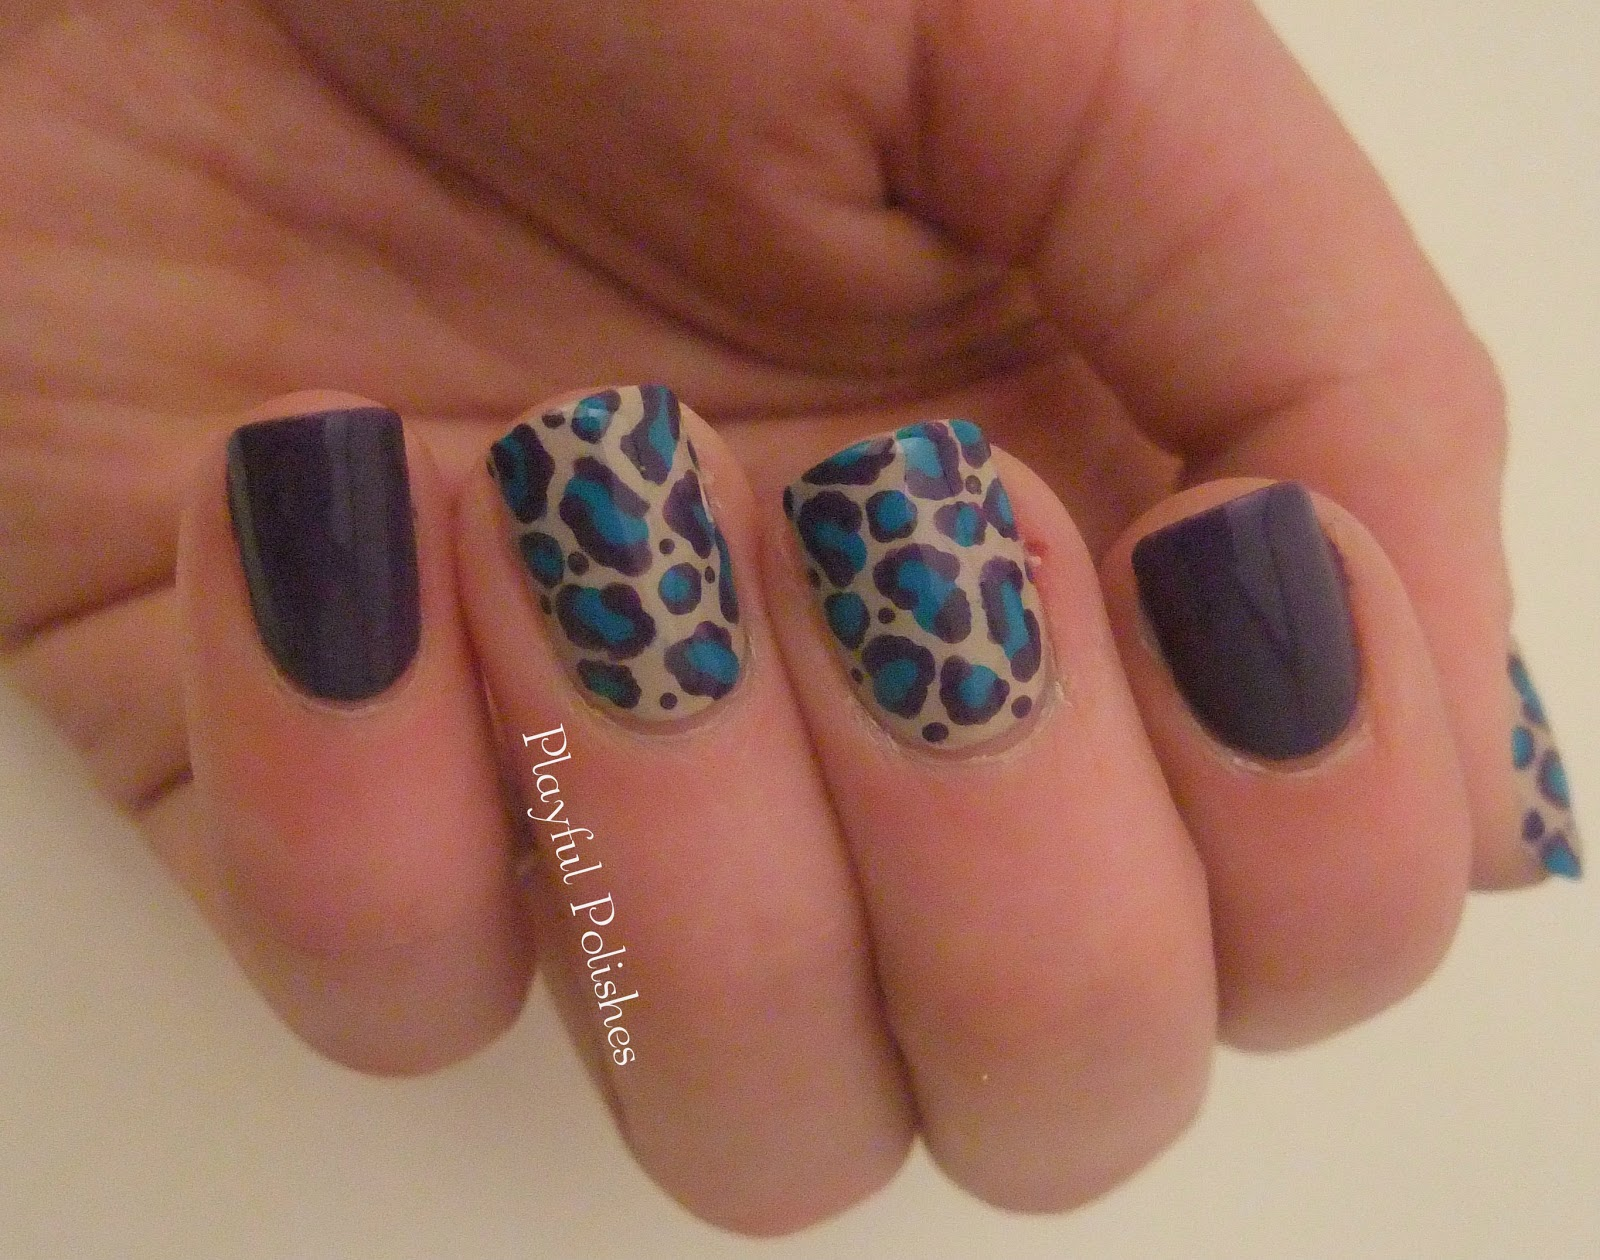 Playful polishes january nail art challenge day 10 january nail art challenge day 10 prinsesfo Gallery